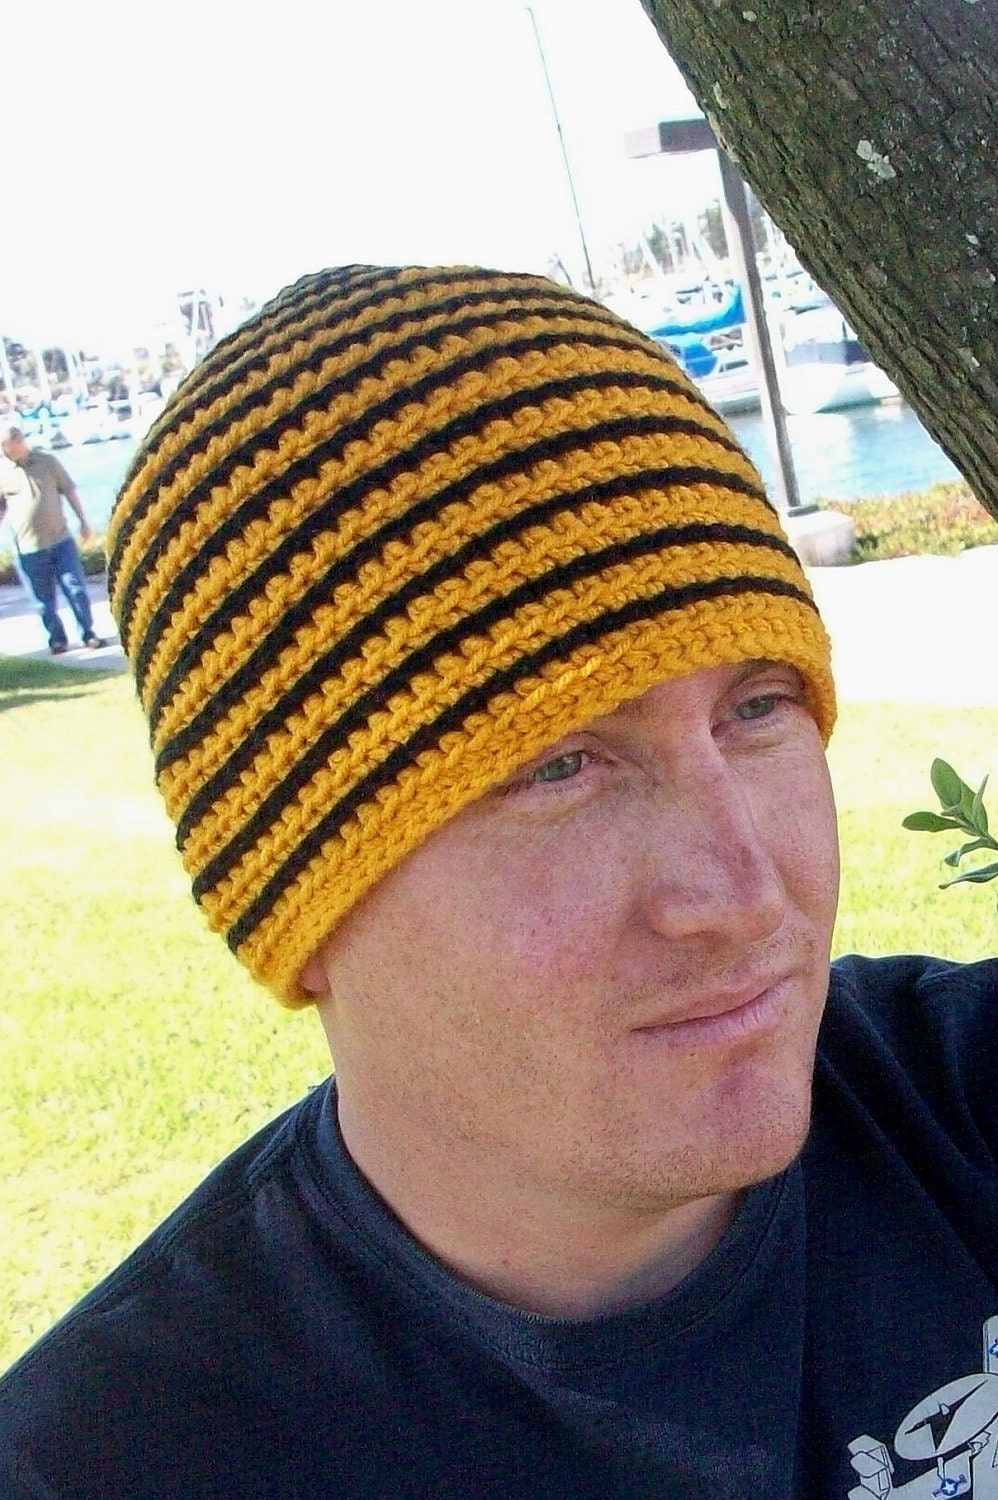 il 170x135.278842528 Etsy Treasury: Hot Guys in Crochet Hats